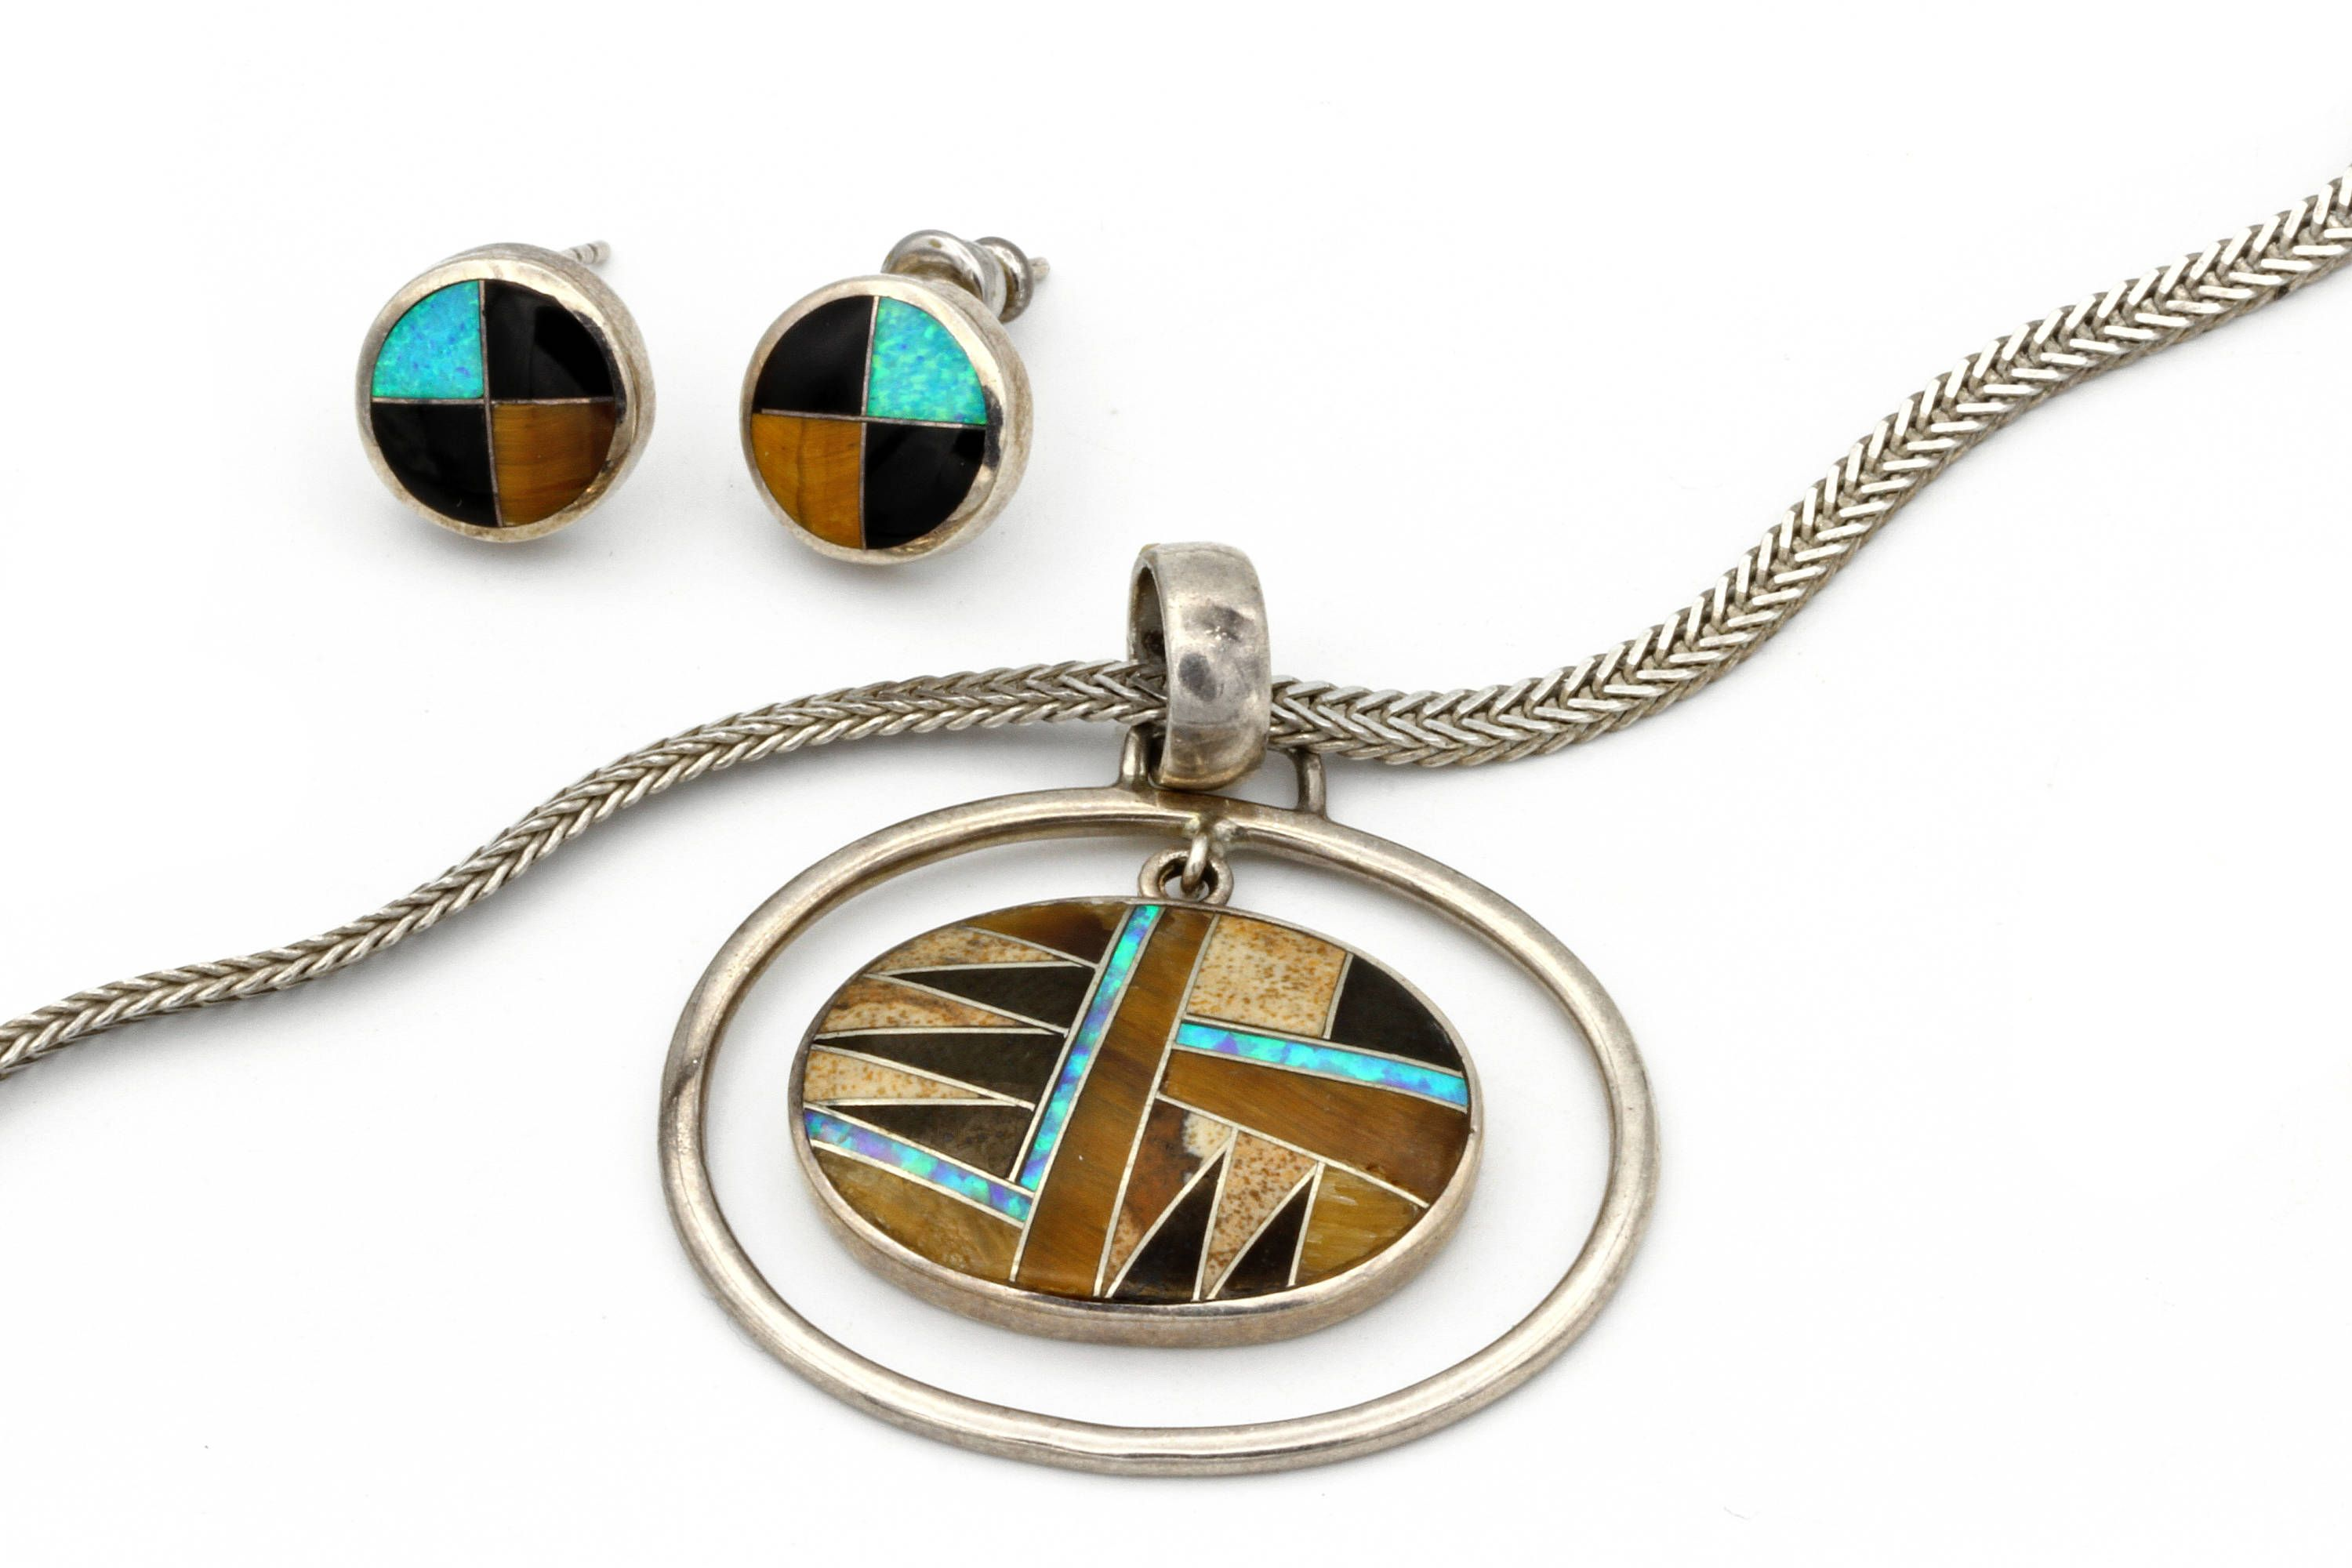 chain full mosaic cannot item zuni image channel pendant sterling turquoise w loaded inlay be